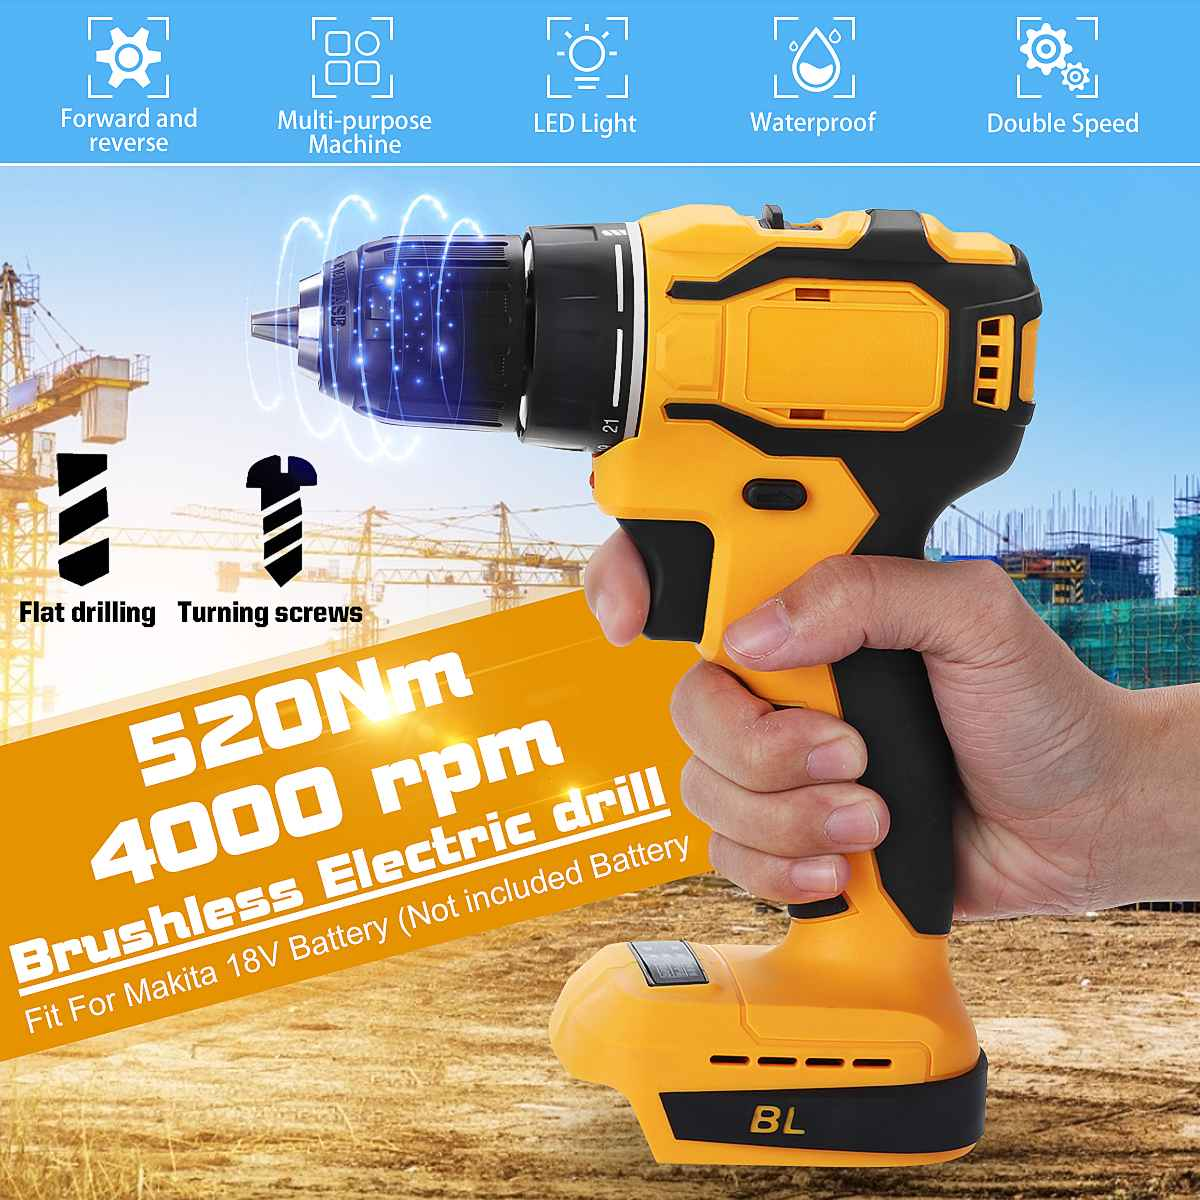 Mini Professional Cordless Drill Power Tools 520Nm Cordless Screwdriver Drills(no battery) Fit For Makita 18V Battery